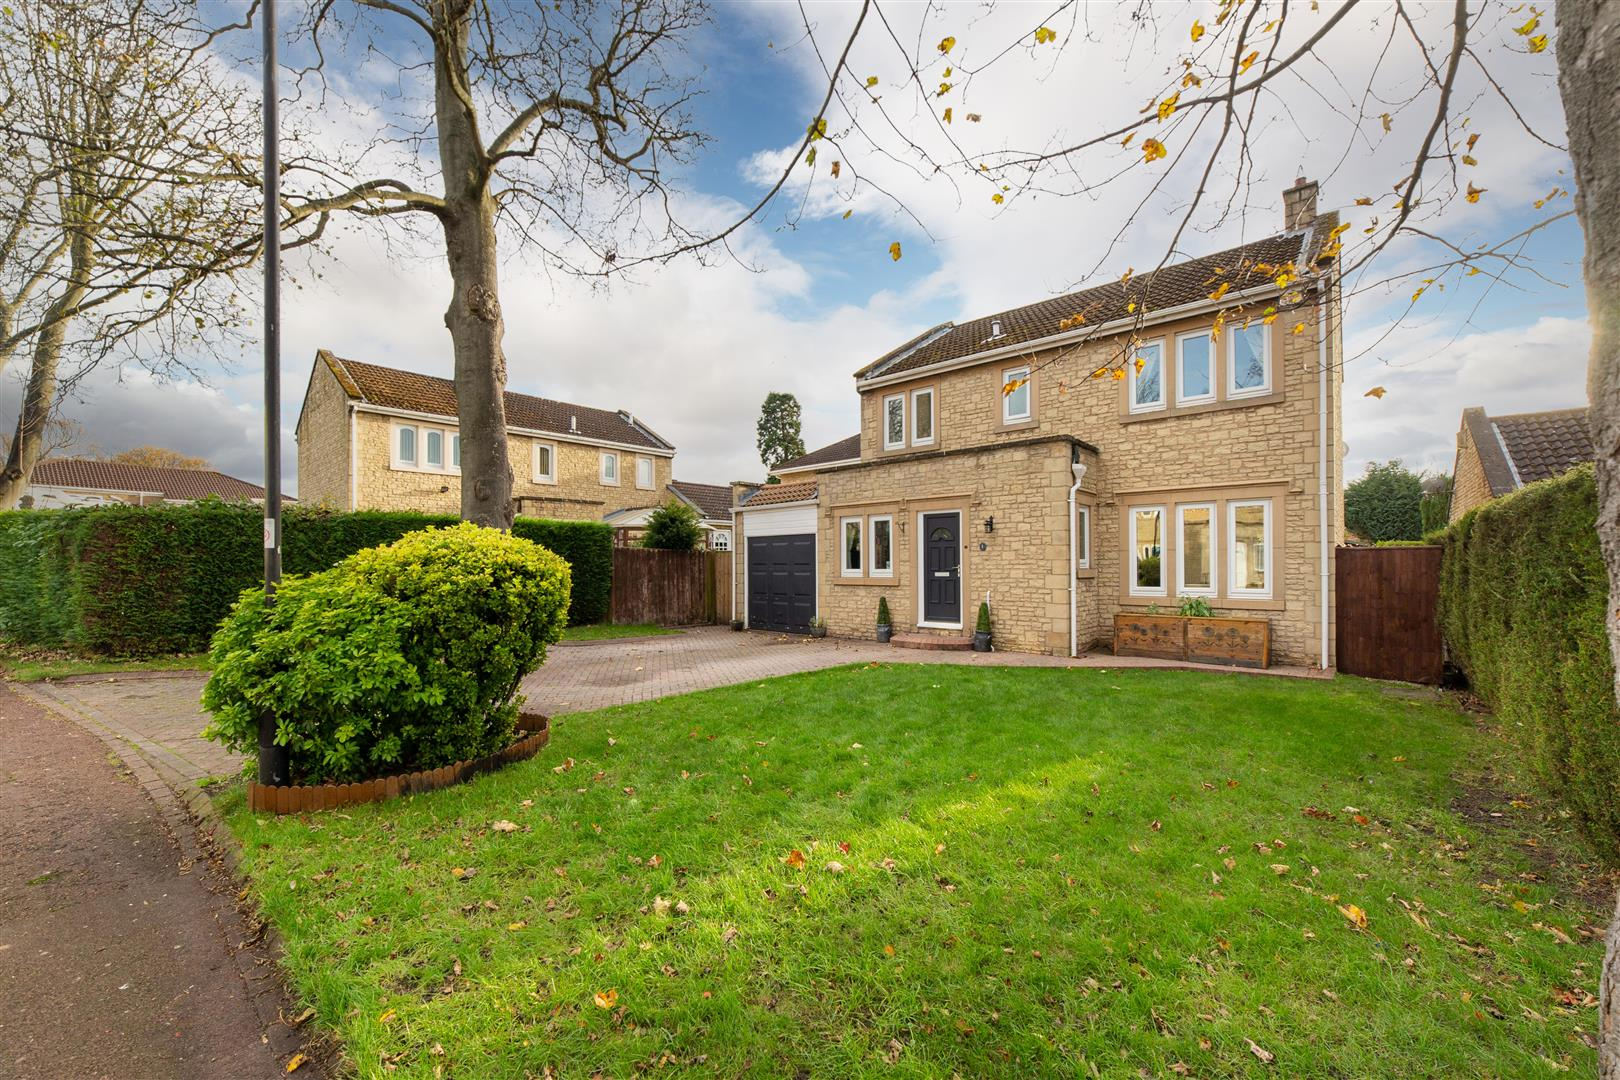 4 bed detached house for sale in Newcastle Upon Tyne, NE3 5PL  - Property Image 1